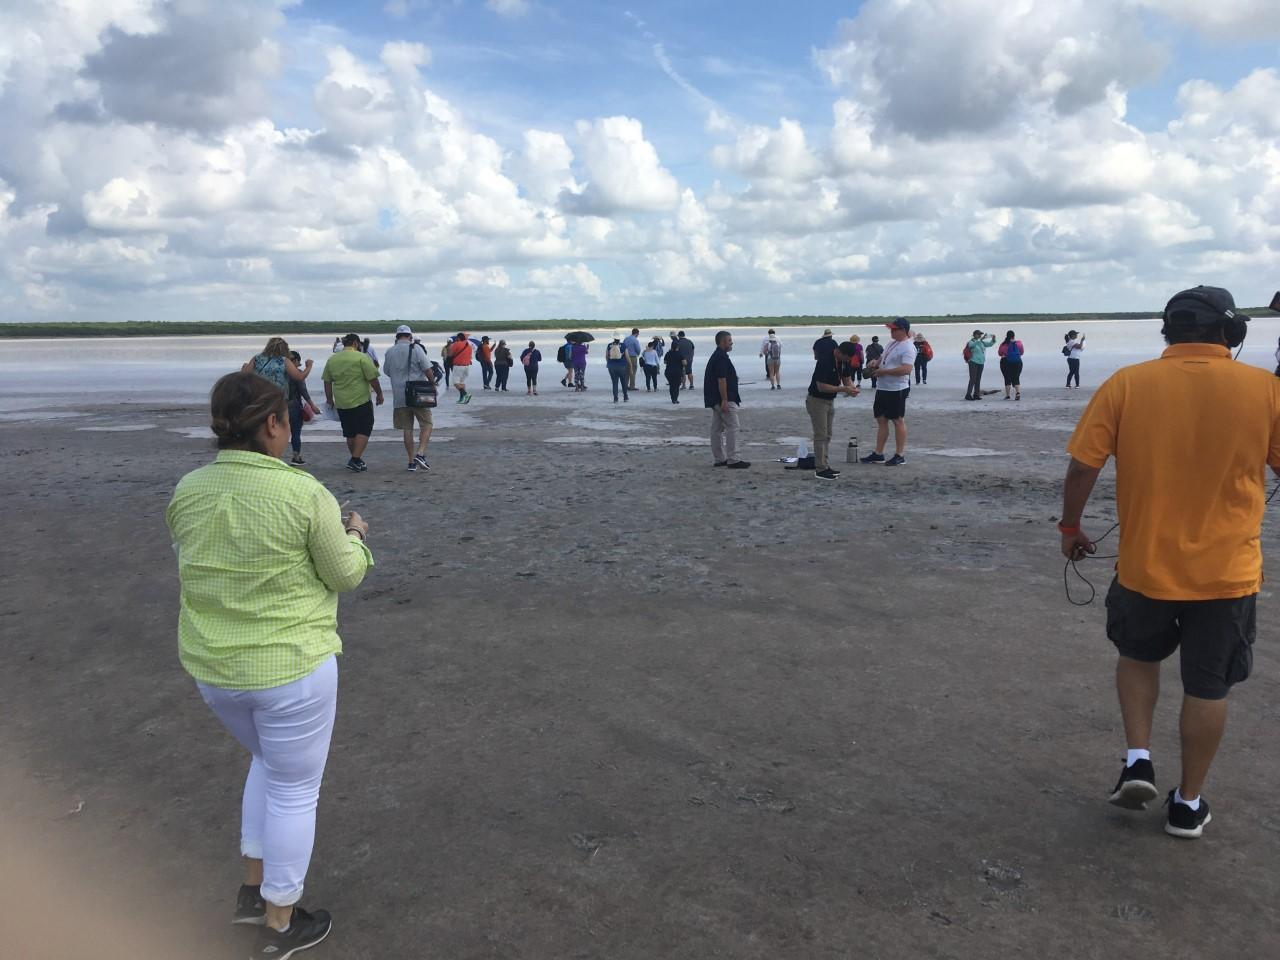 Teachers doing an activity on the lake shore